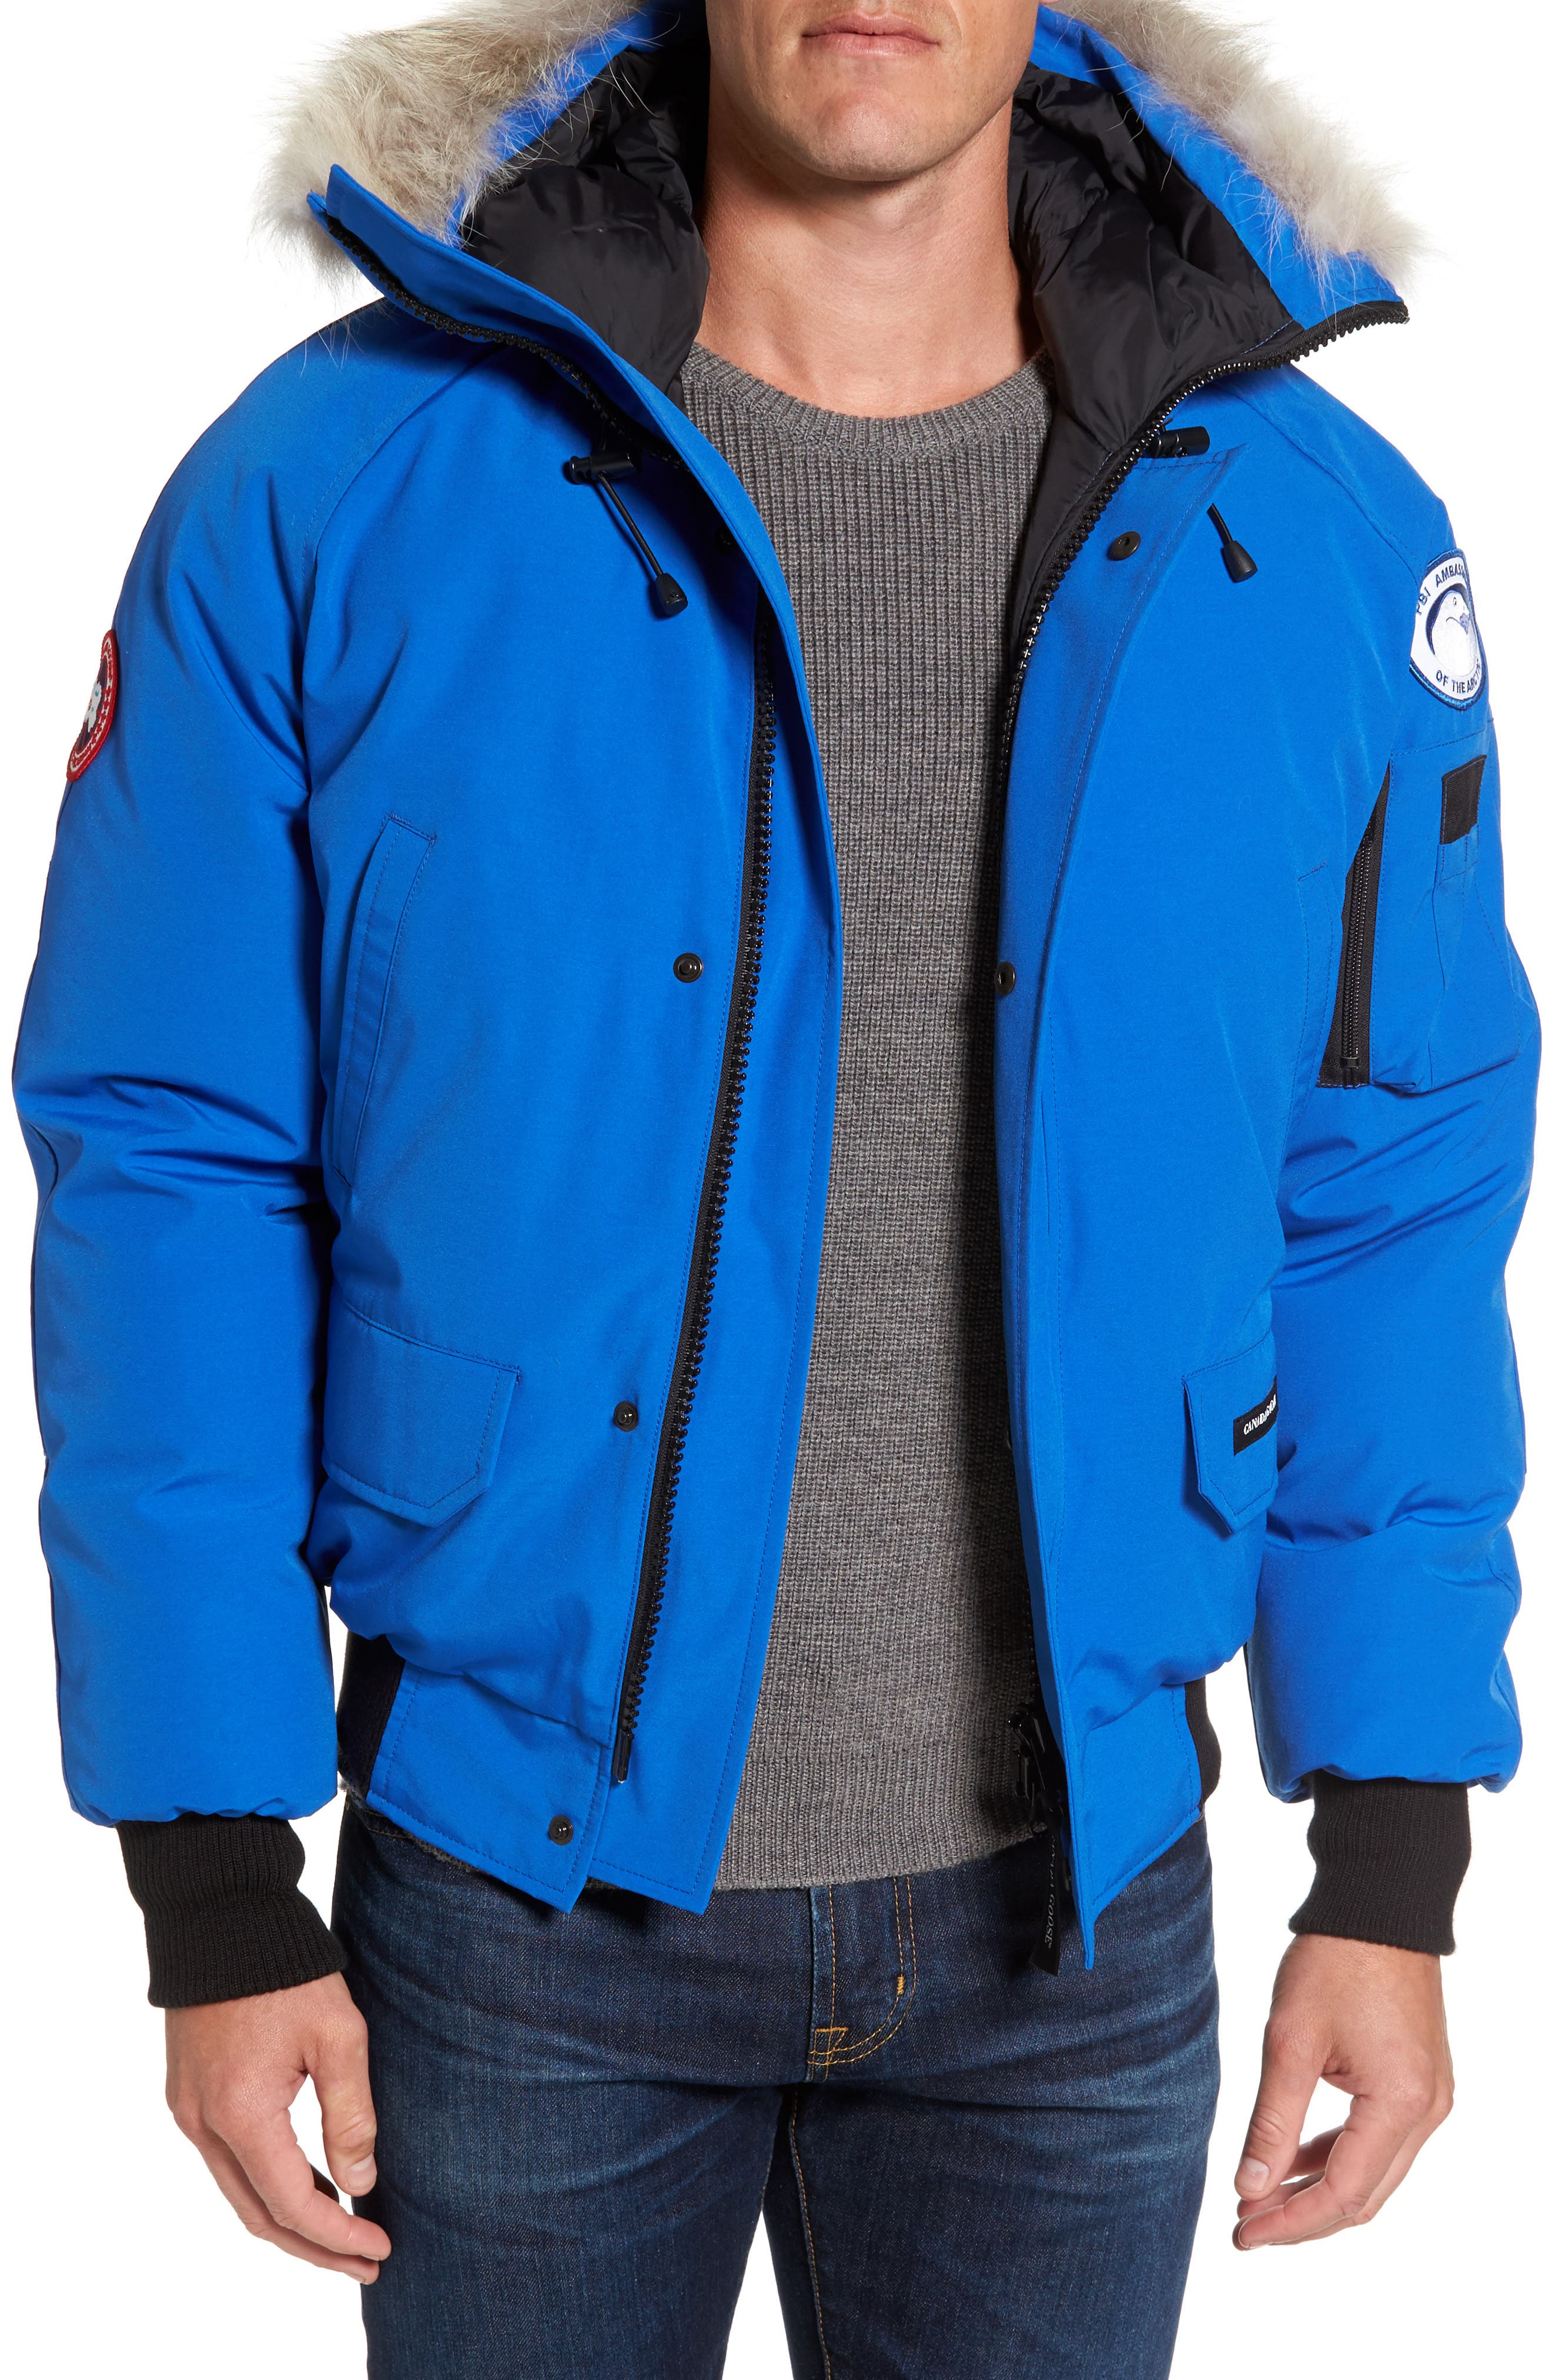 PBI Chilliwack Down Bomber Jacket with Genuine Coyote Trim,                             Main thumbnail 1, color,                             Royal Blue